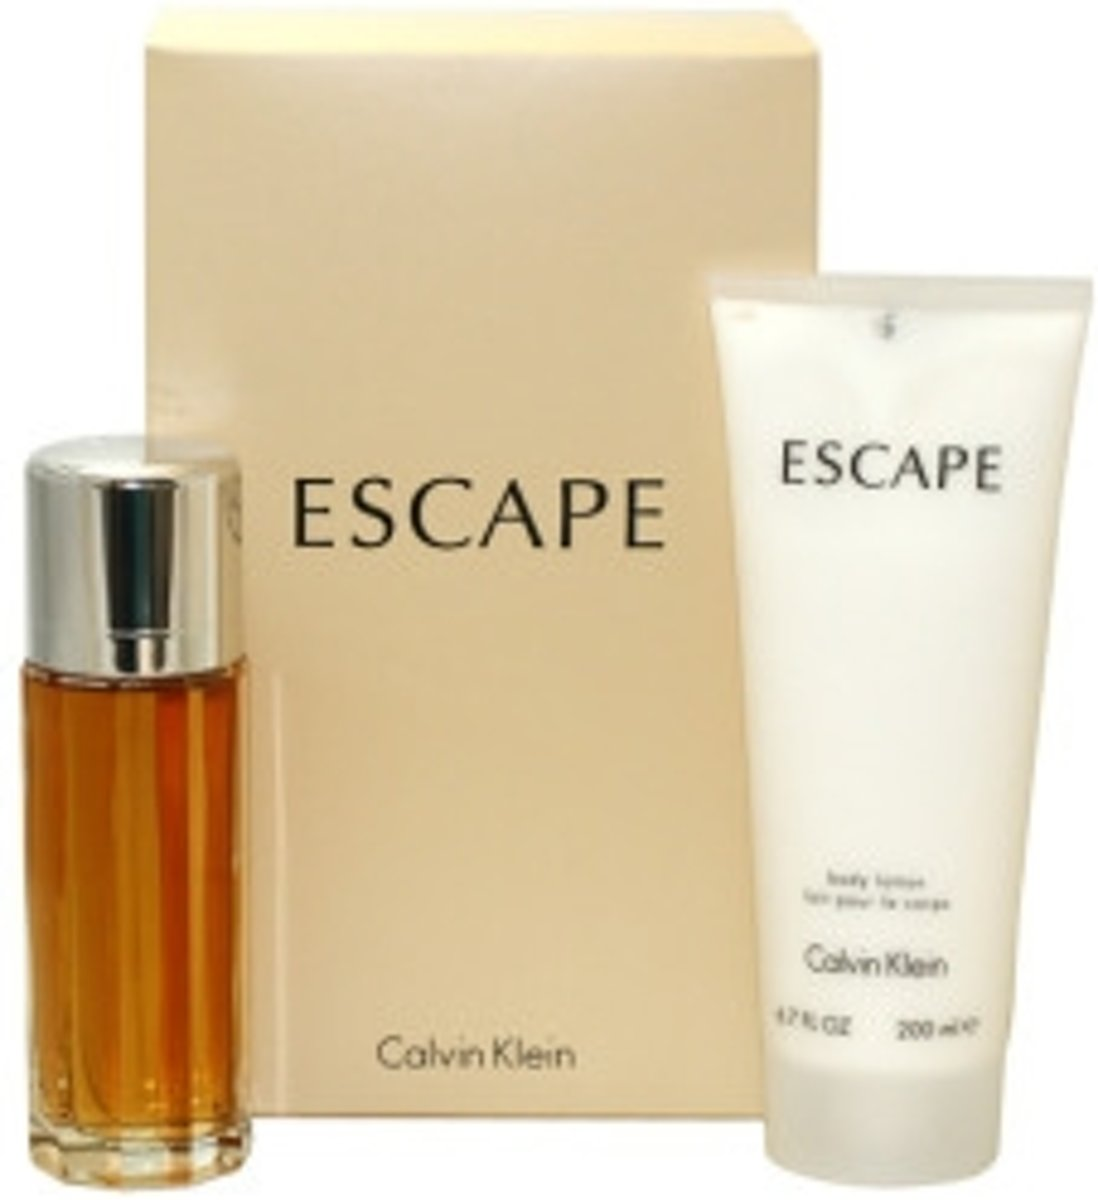 Calvin Klein - Eau de parfum - Escape 100ml eau de parfum + 100ml Bodylotion - Gifts ml